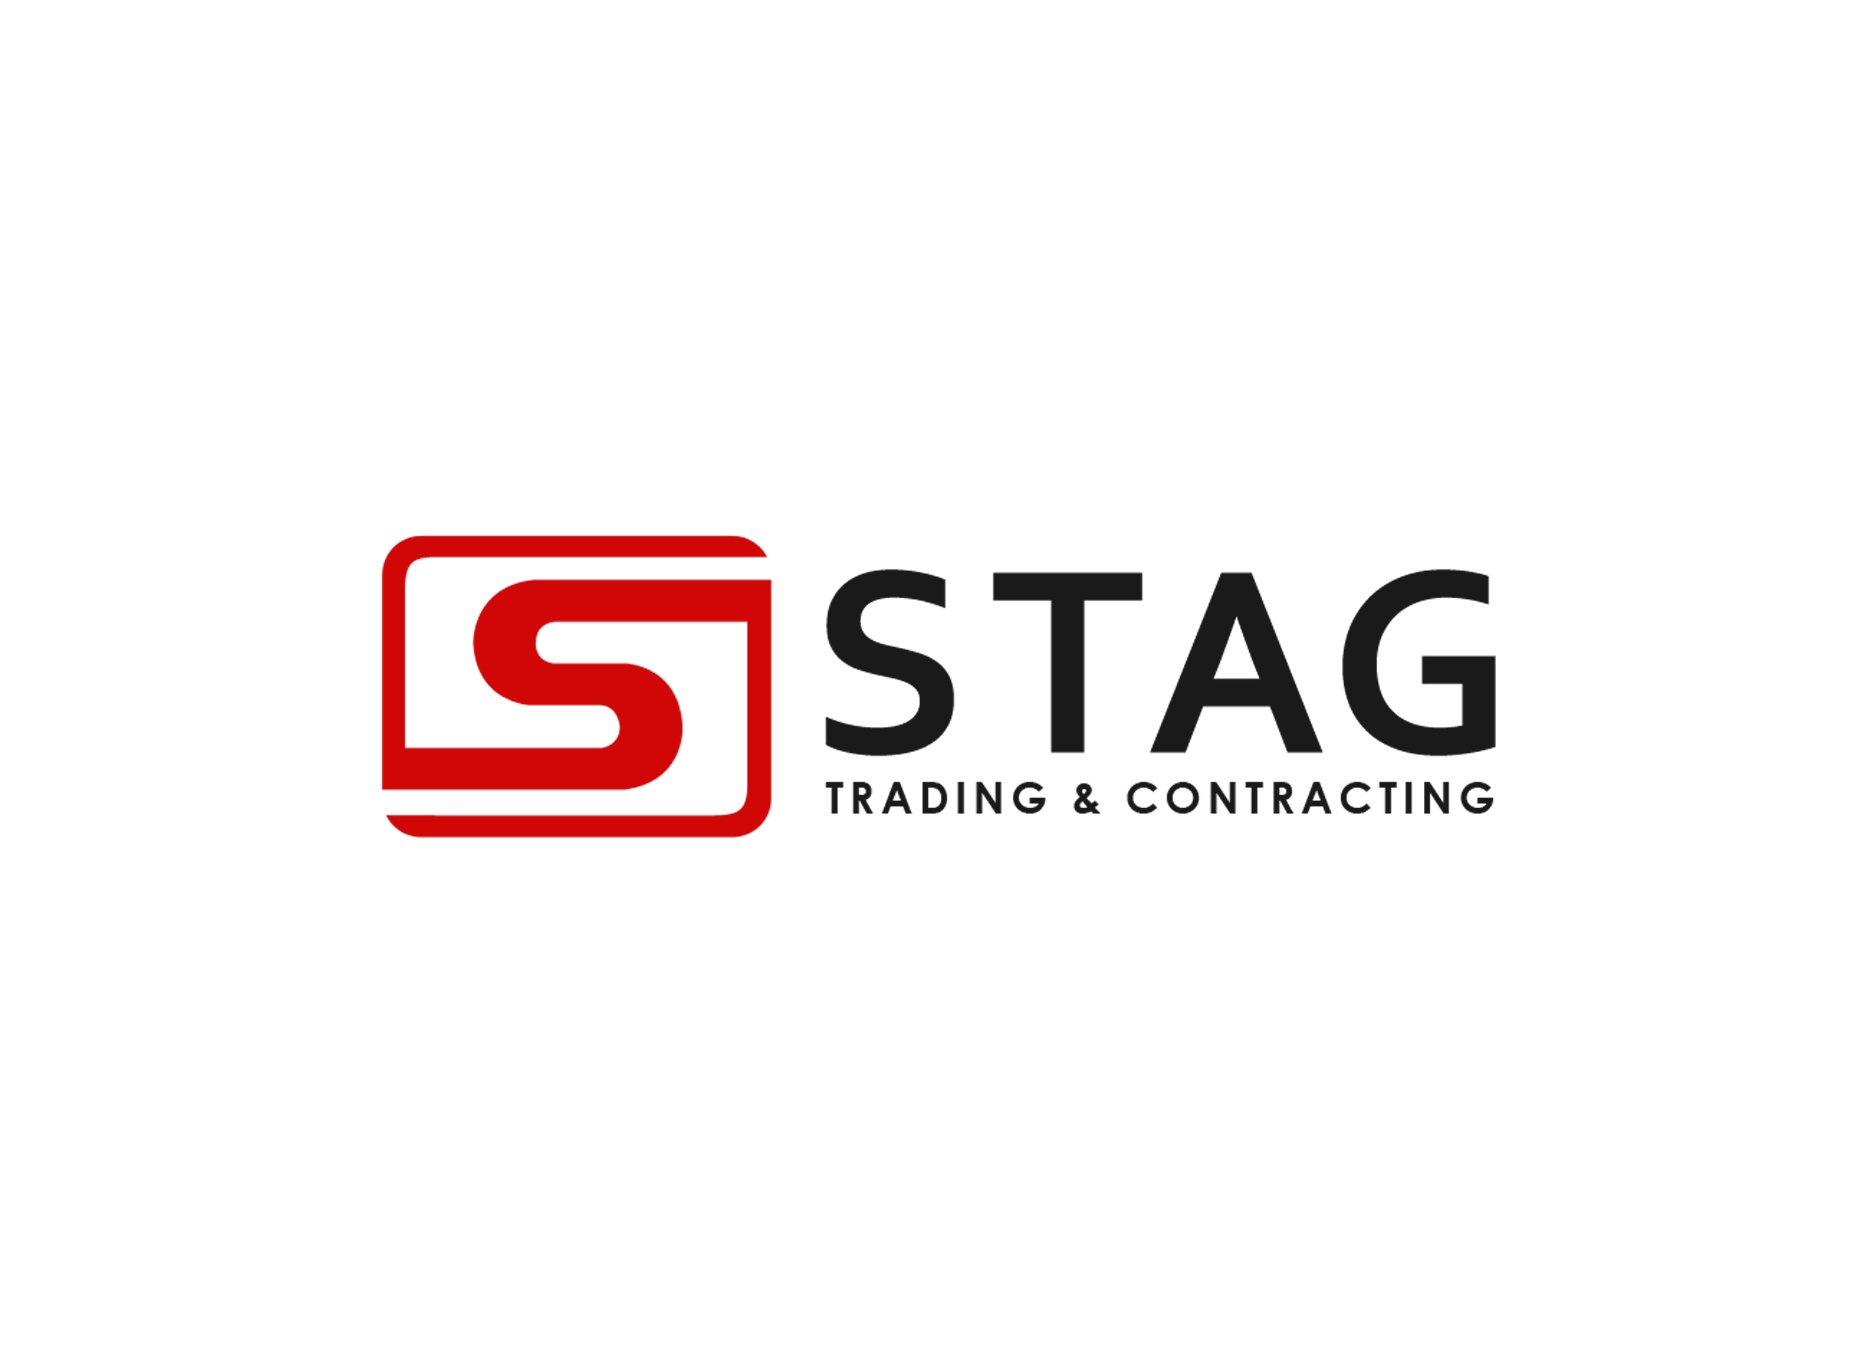 Logo Design by omARTist - Entry No. 286 in the Logo Design Contest Captivating Logo Design for STAG Trading & Contracting.